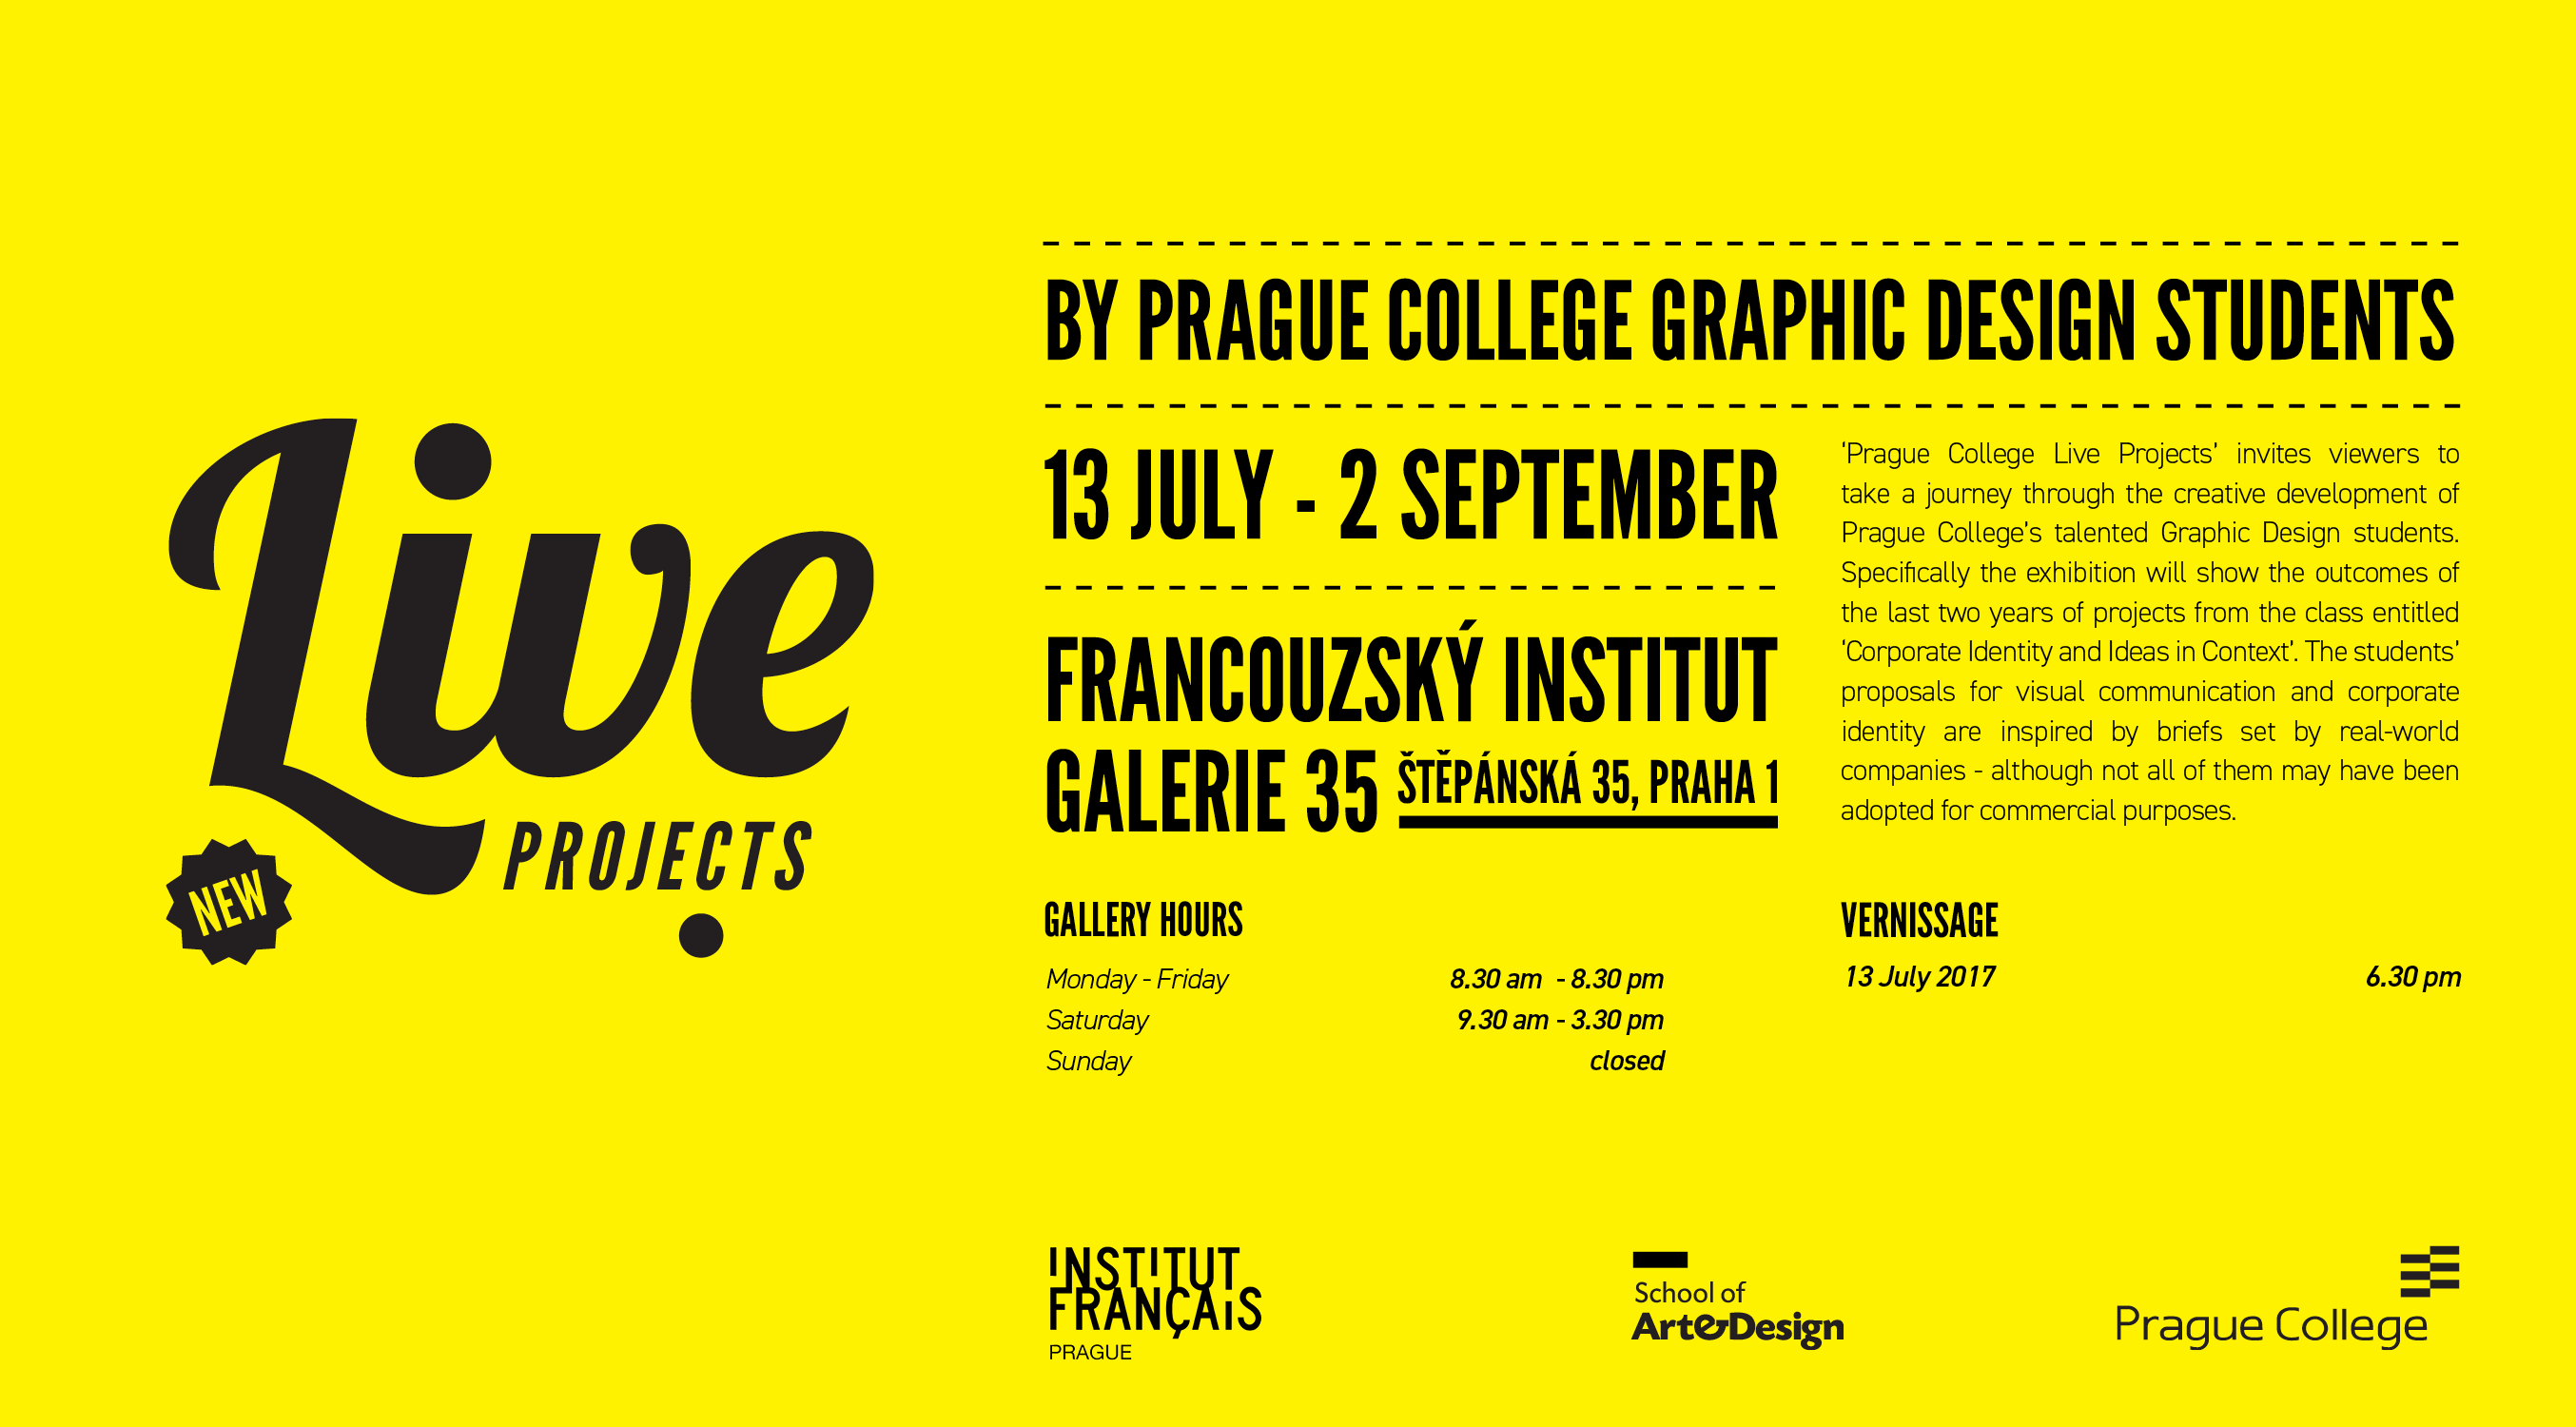 Summer exhibition of Graphic Design students' live projects